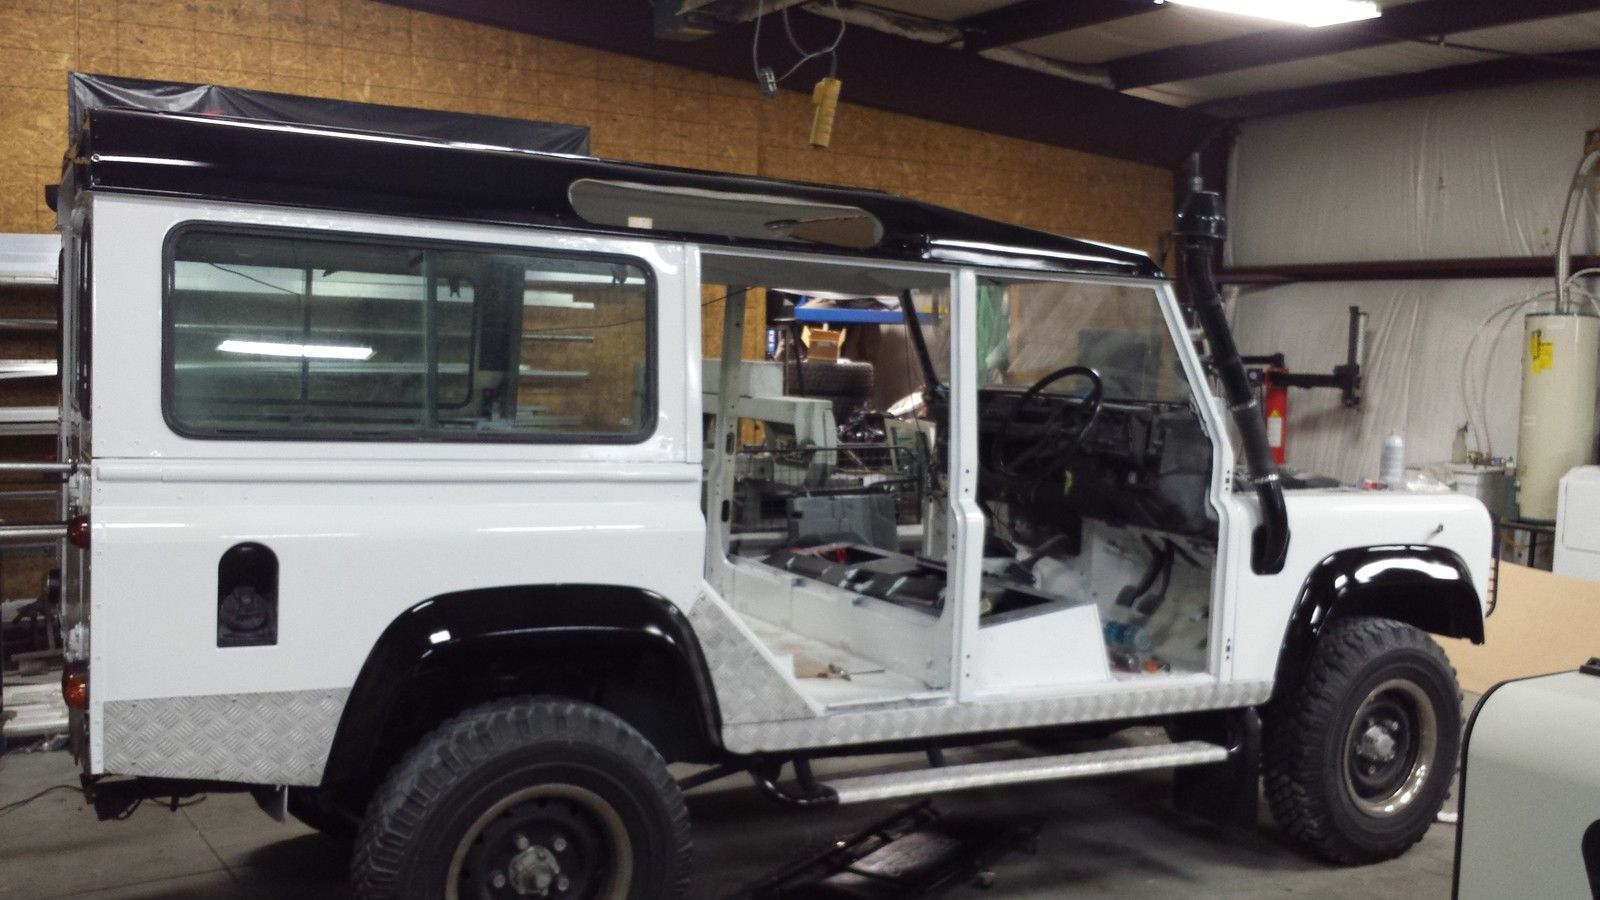 Land Rover Defender 110 with a nice restoration. Diesel, manual, like new